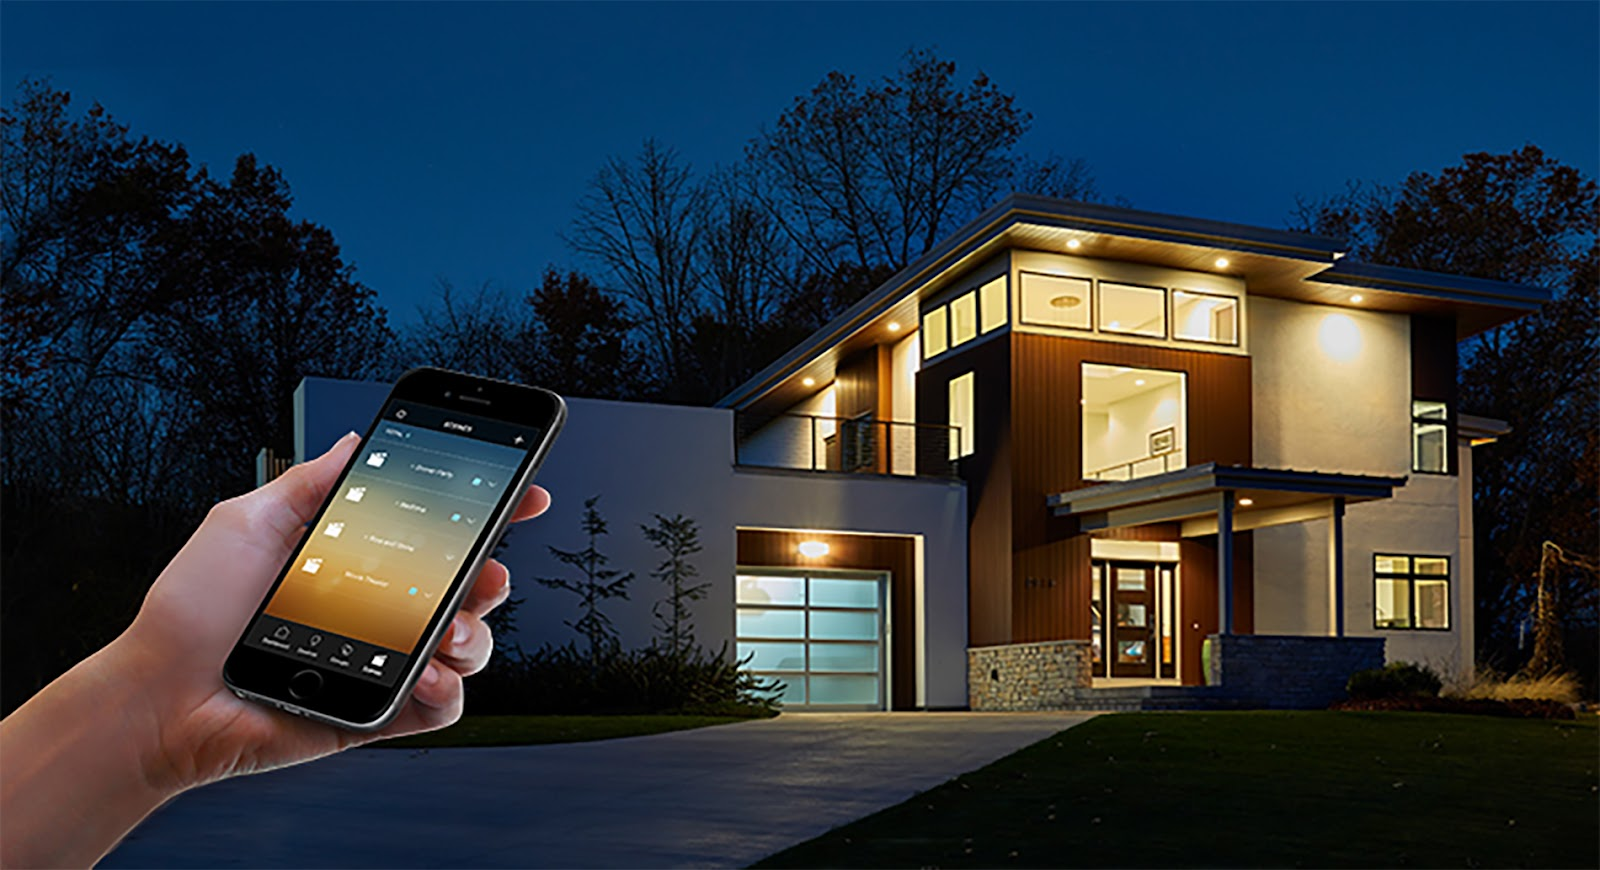 Learn How to Control Lights with an App